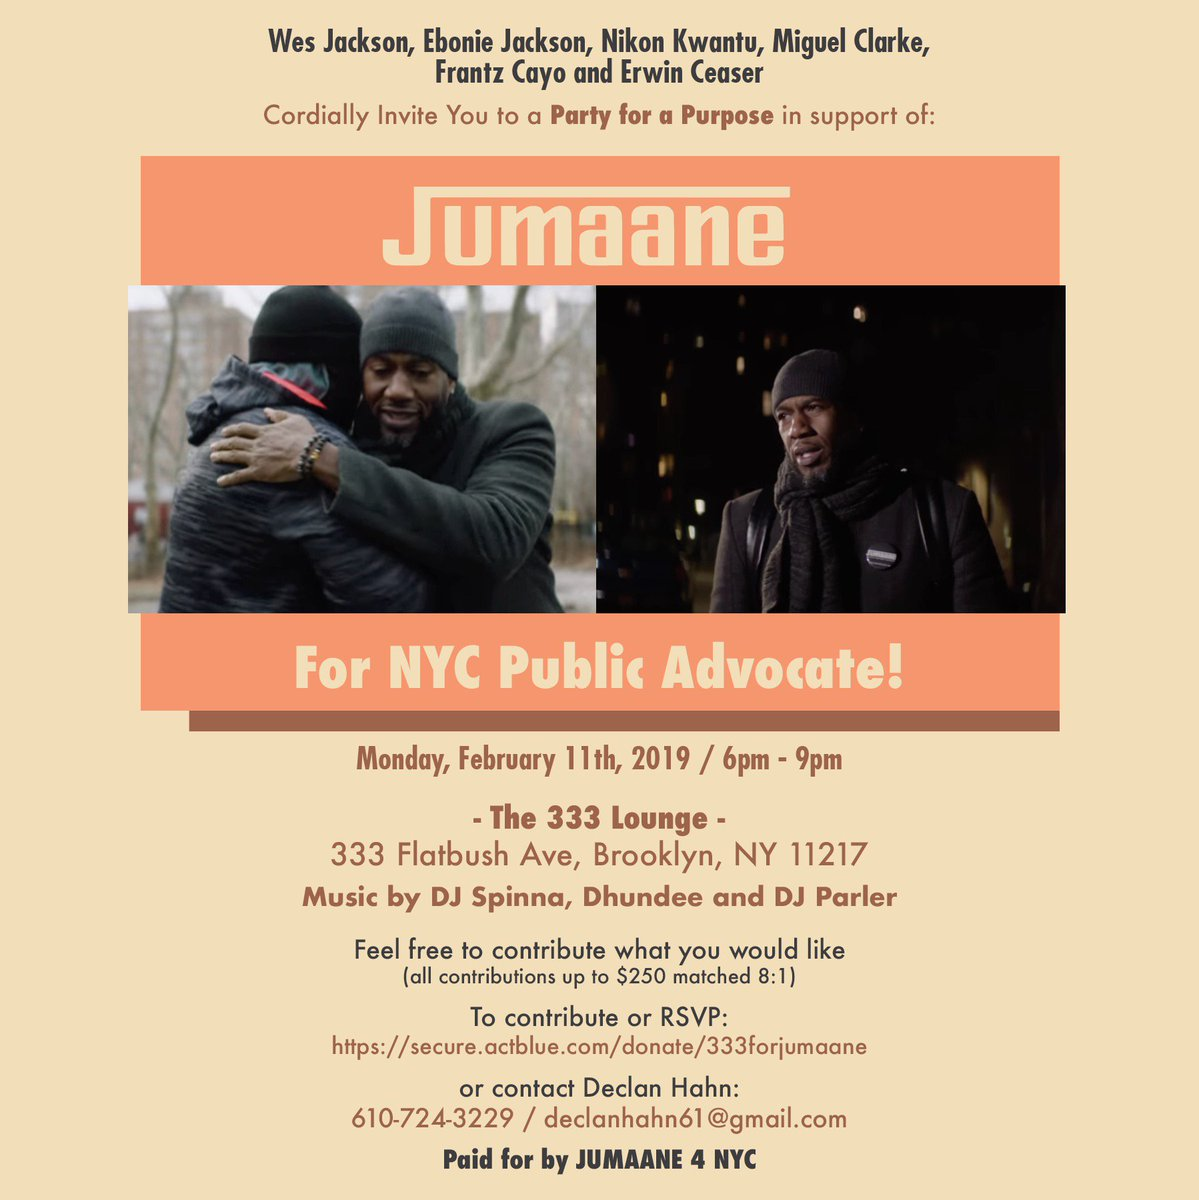 Come rock with us -@JumaaneWilliams for NYC Public Advocate Fundraiser  with @djspinna , @dhundee & @DjParler on the 1's and 2's. This Monday at 333 Lounge, BKNY https://t.co/0wkEvzWvii